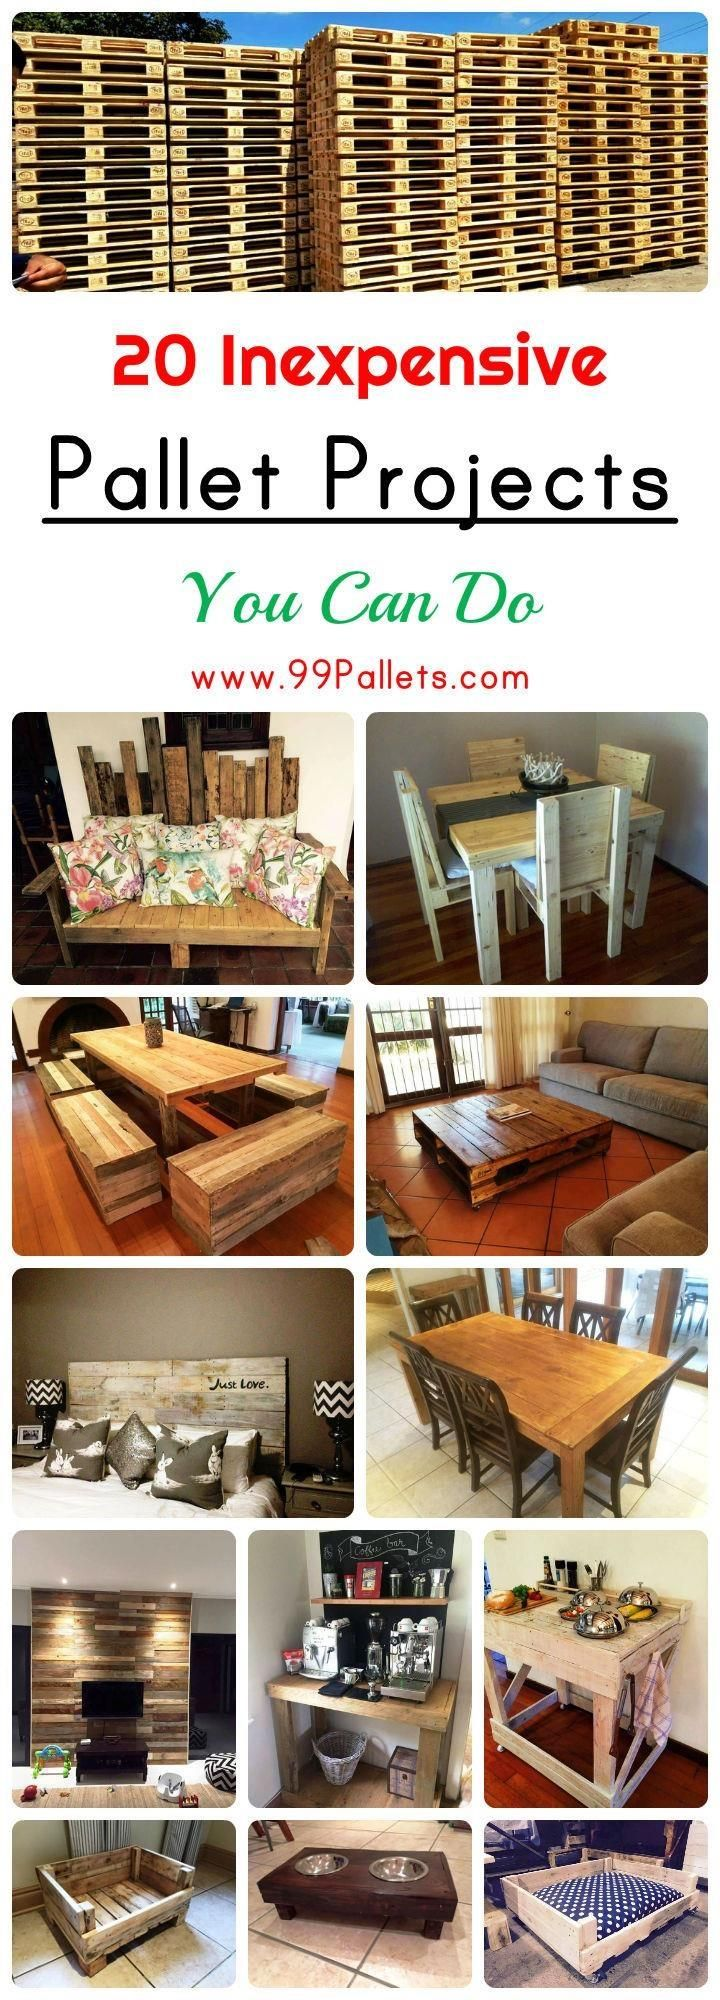 Easy-Pallet-Projects.jpg (720×2000)